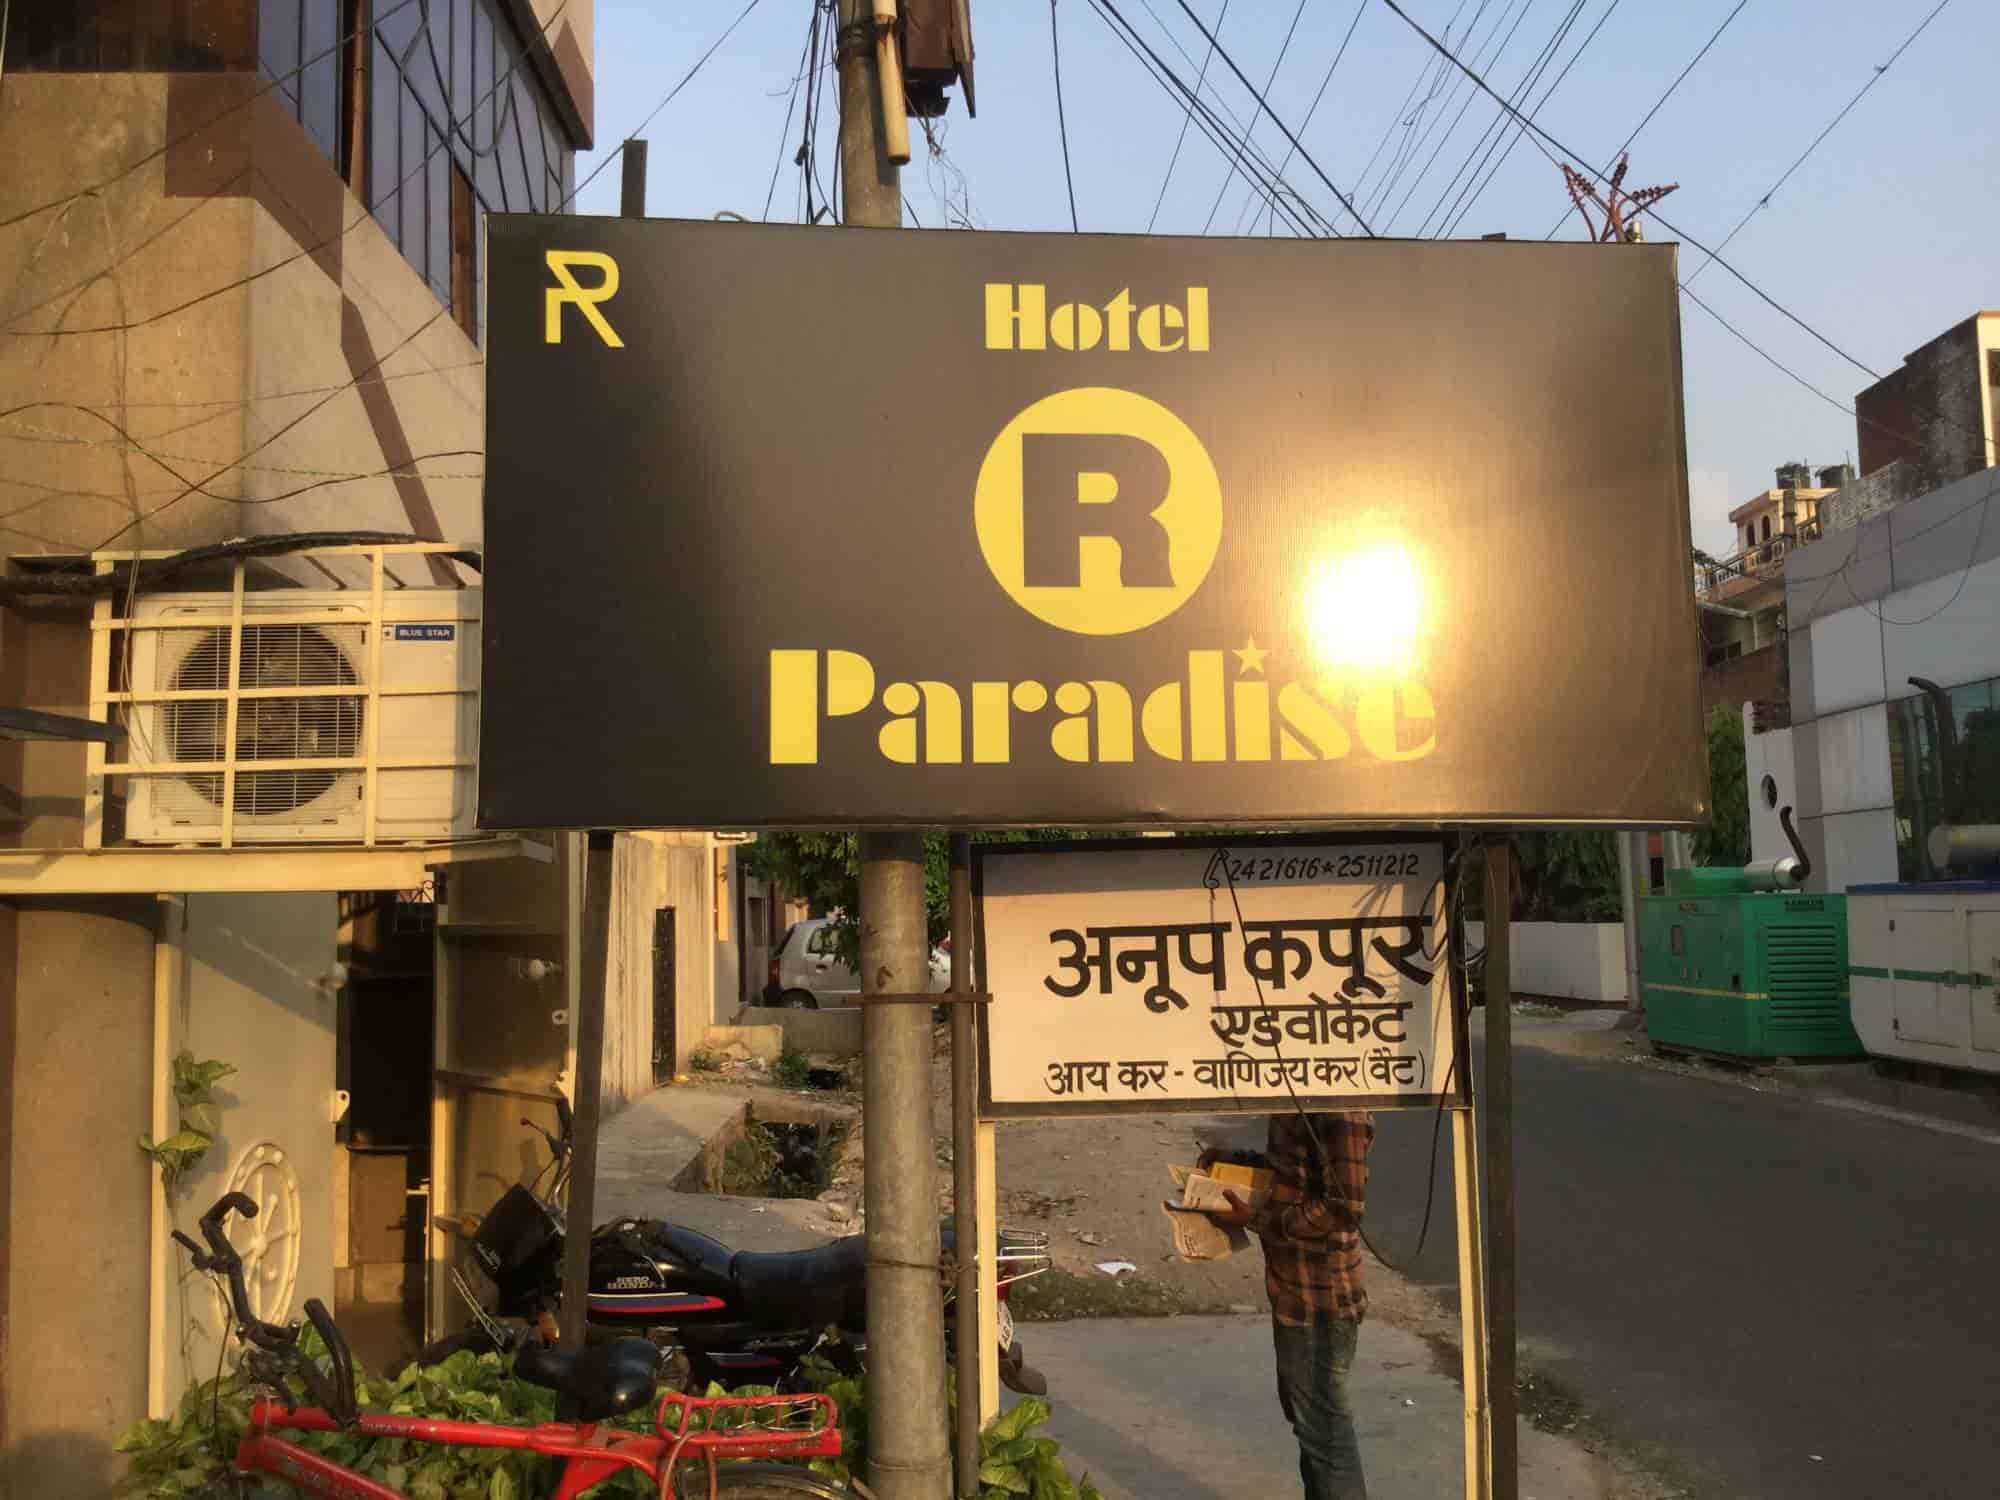 Hotel R Paradise Photos Civil Lines Bareilly Hotels Rs 1001 To